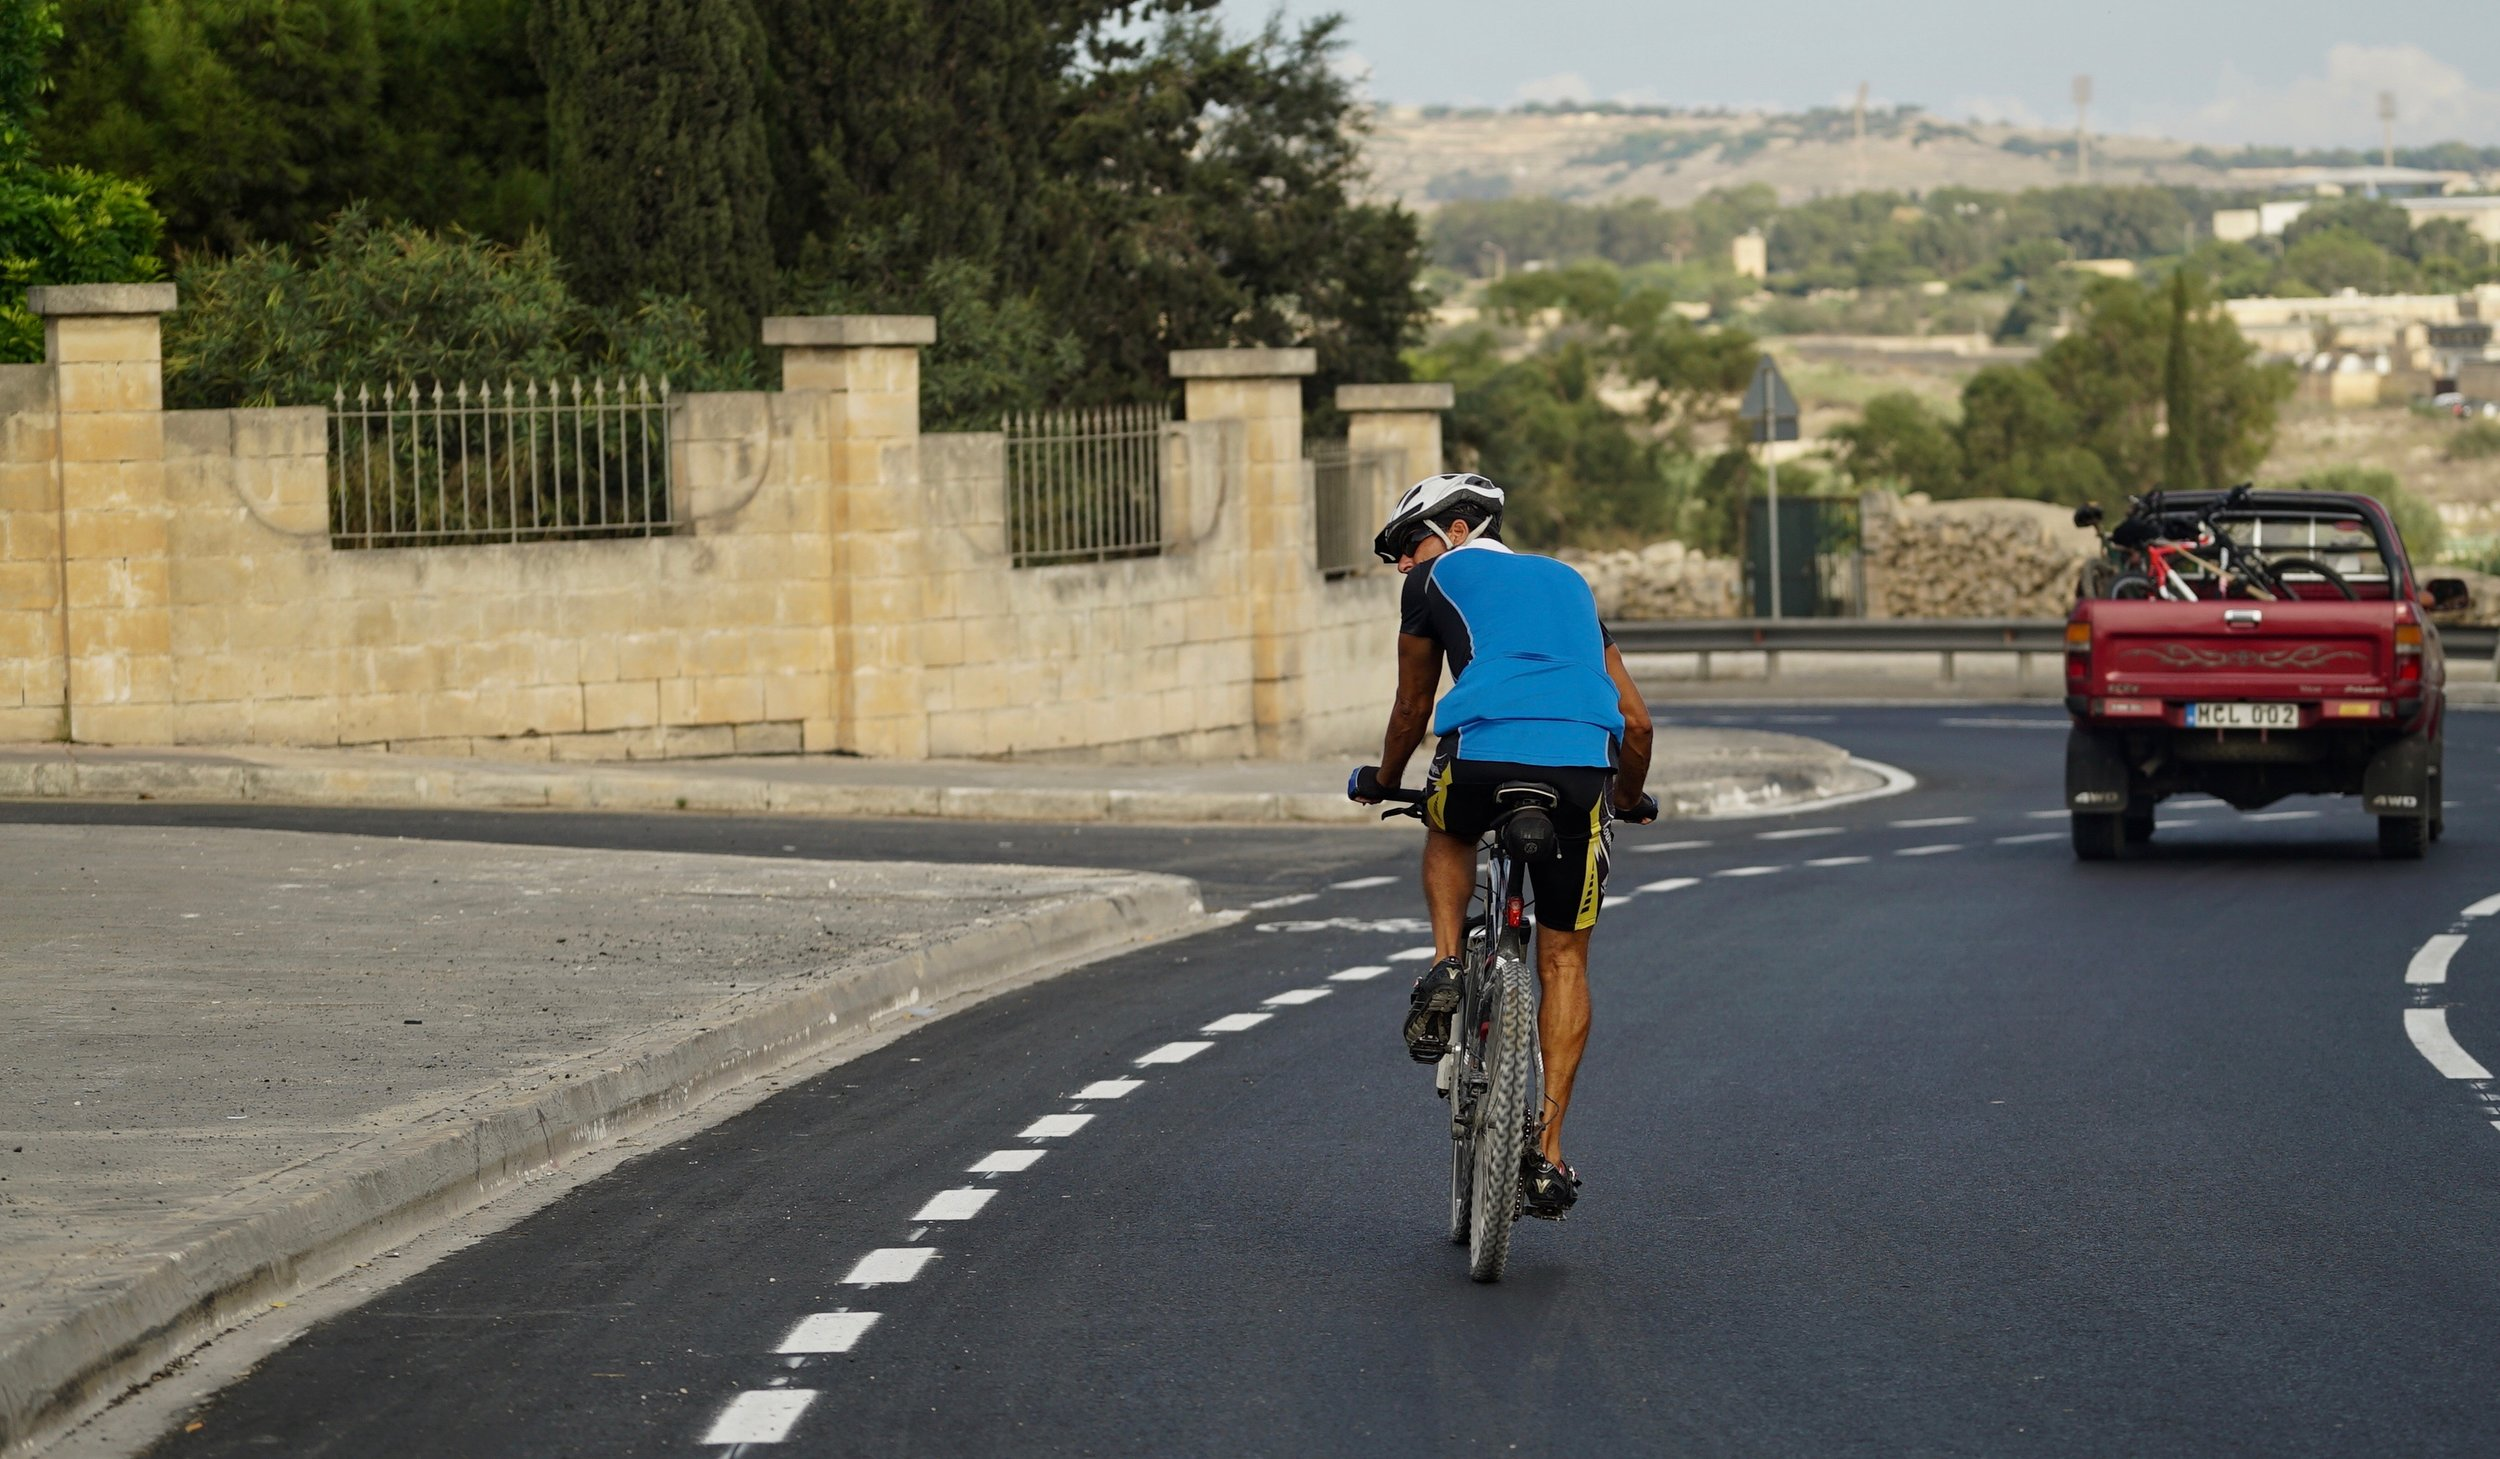 Cyclists are reluctant to use the new bicycle roundabout lanes as they encourage left hooking and vulnerable conflict with vehicles.